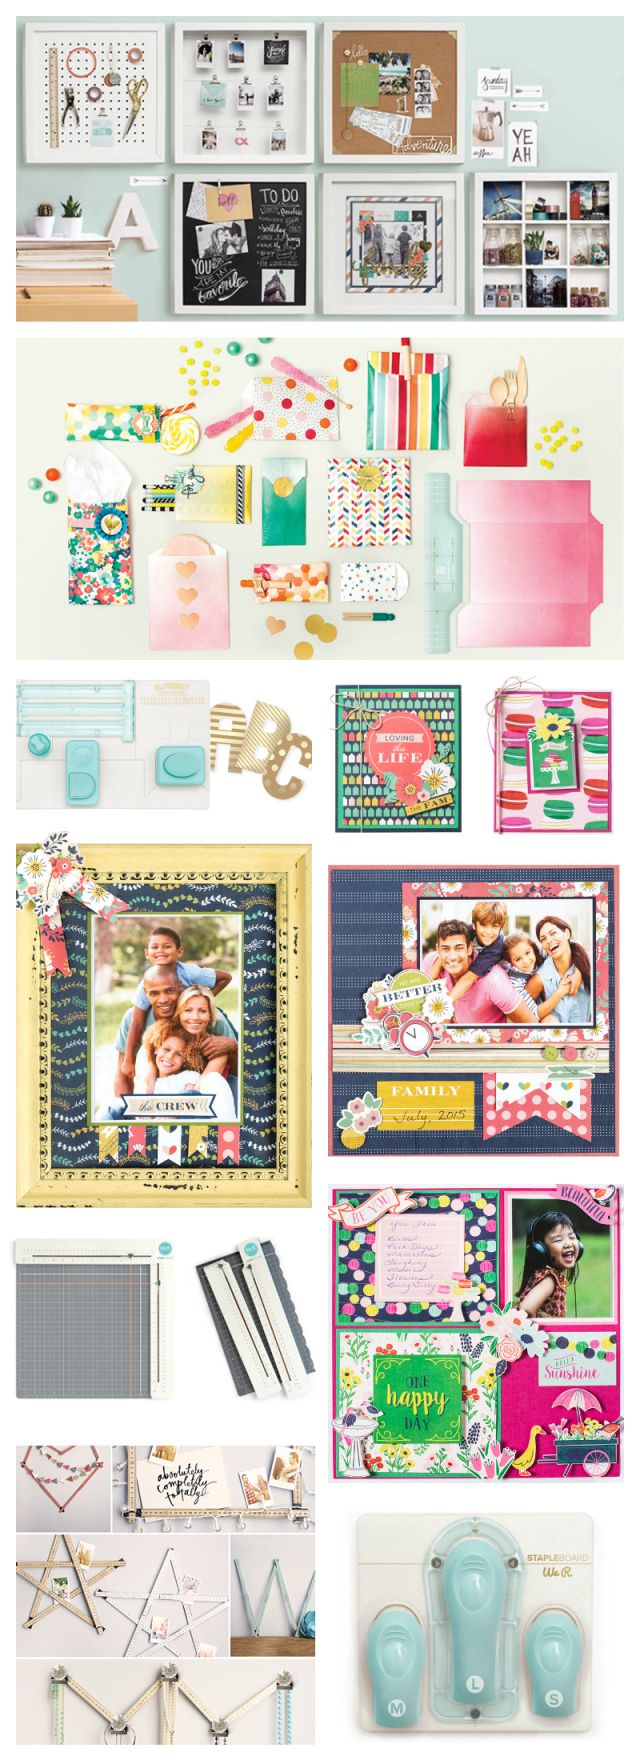 33 creative scrapbook ideas every crafter should know diy projects - The Craft And Hobby Association Trade Show Starts Tomorrow And Boy Have We Got A Ton Of Fabulous New Releases We Re Unveiling This Weekend